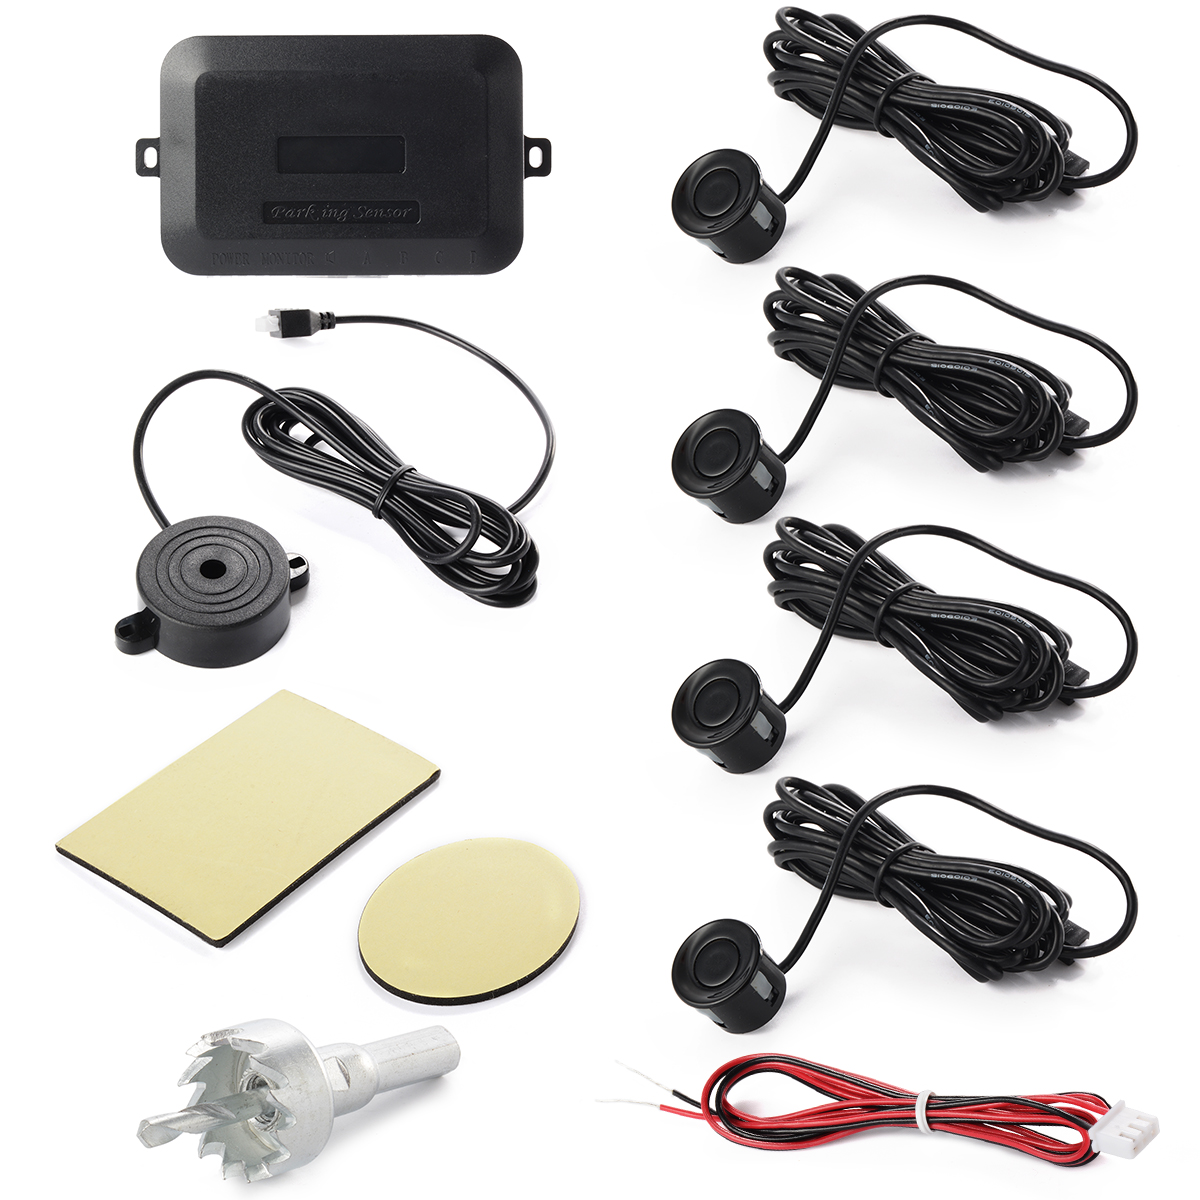 Parking 4 Sensors Car Reverse Backup Rear Buzzer Radar System kit Sound Alarm Black MA320